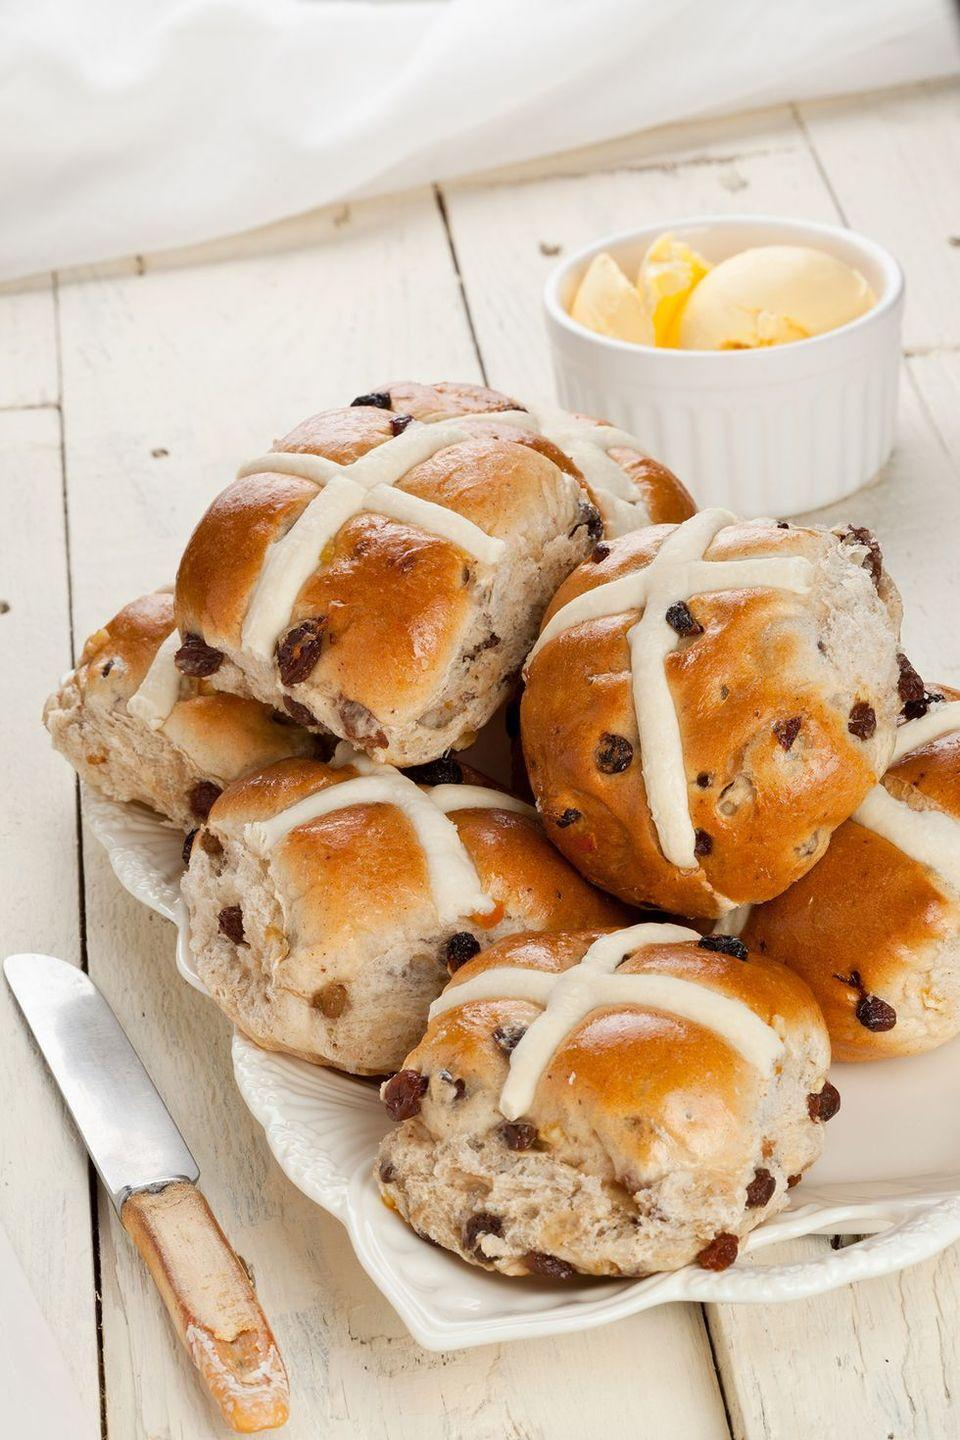 """<p>This simple hot cross bun recipe will become a family favorite year after year.</p><p><em><a href=""""https://www.womansday.com/food-recipes/food-drinks/recipes/a21048/hot-cross-buns-3699/"""" rel=""""nofollow noopener"""" target=""""_blank"""" data-ylk=""""slk:Get the Hot Cross Buns recipe"""" class=""""link rapid-noclick-resp""""><strong>Get the Hot Cross Buns recipe</strong></a><strong><strong>. </strong></strong></em><br></p>"""